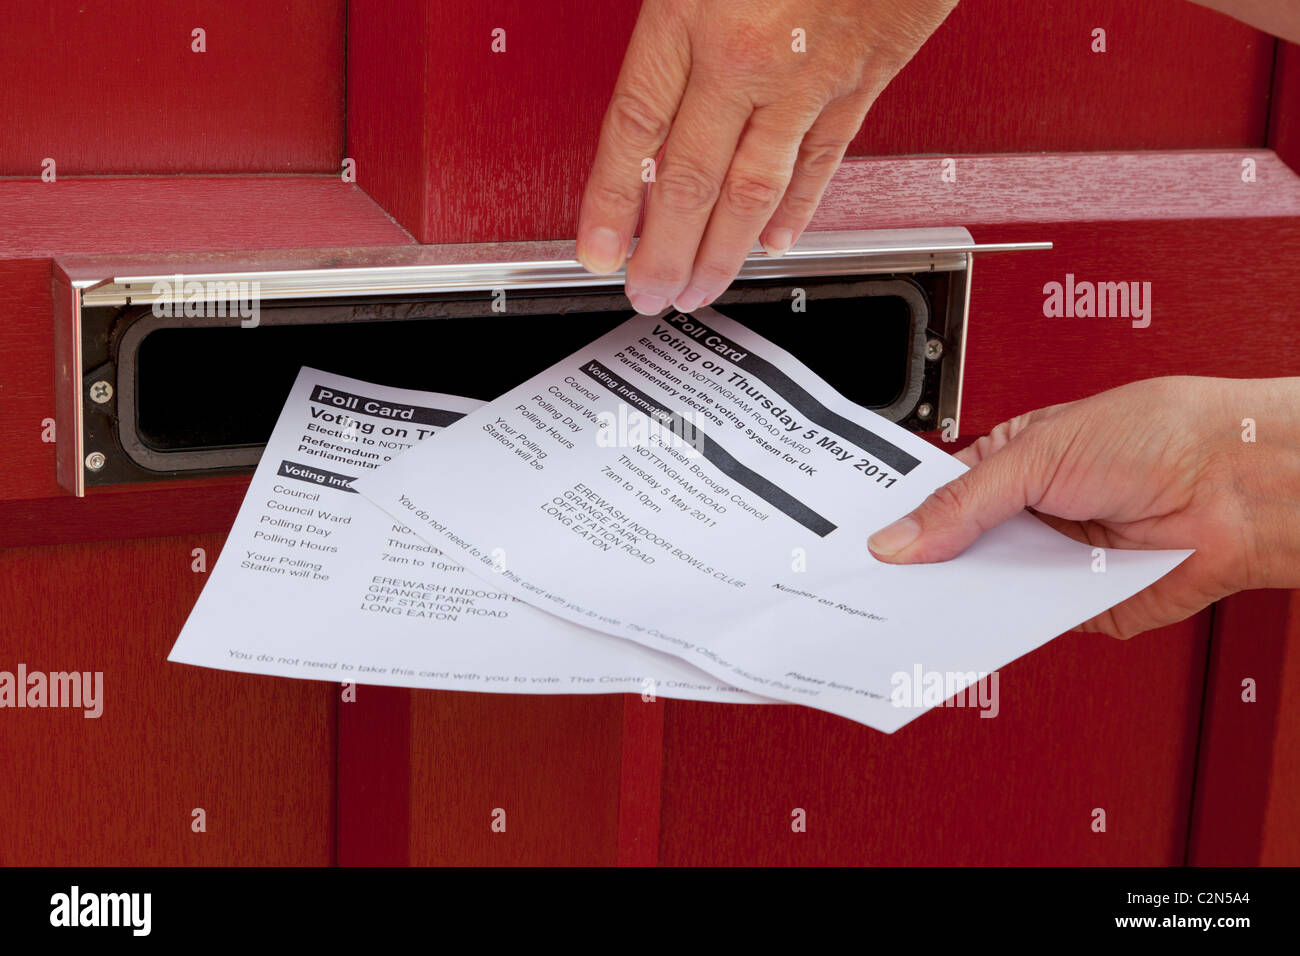 Polling cards being pushed through a front door letter box for the Av Referendum on May 5th 2011 England UK - Stock Image